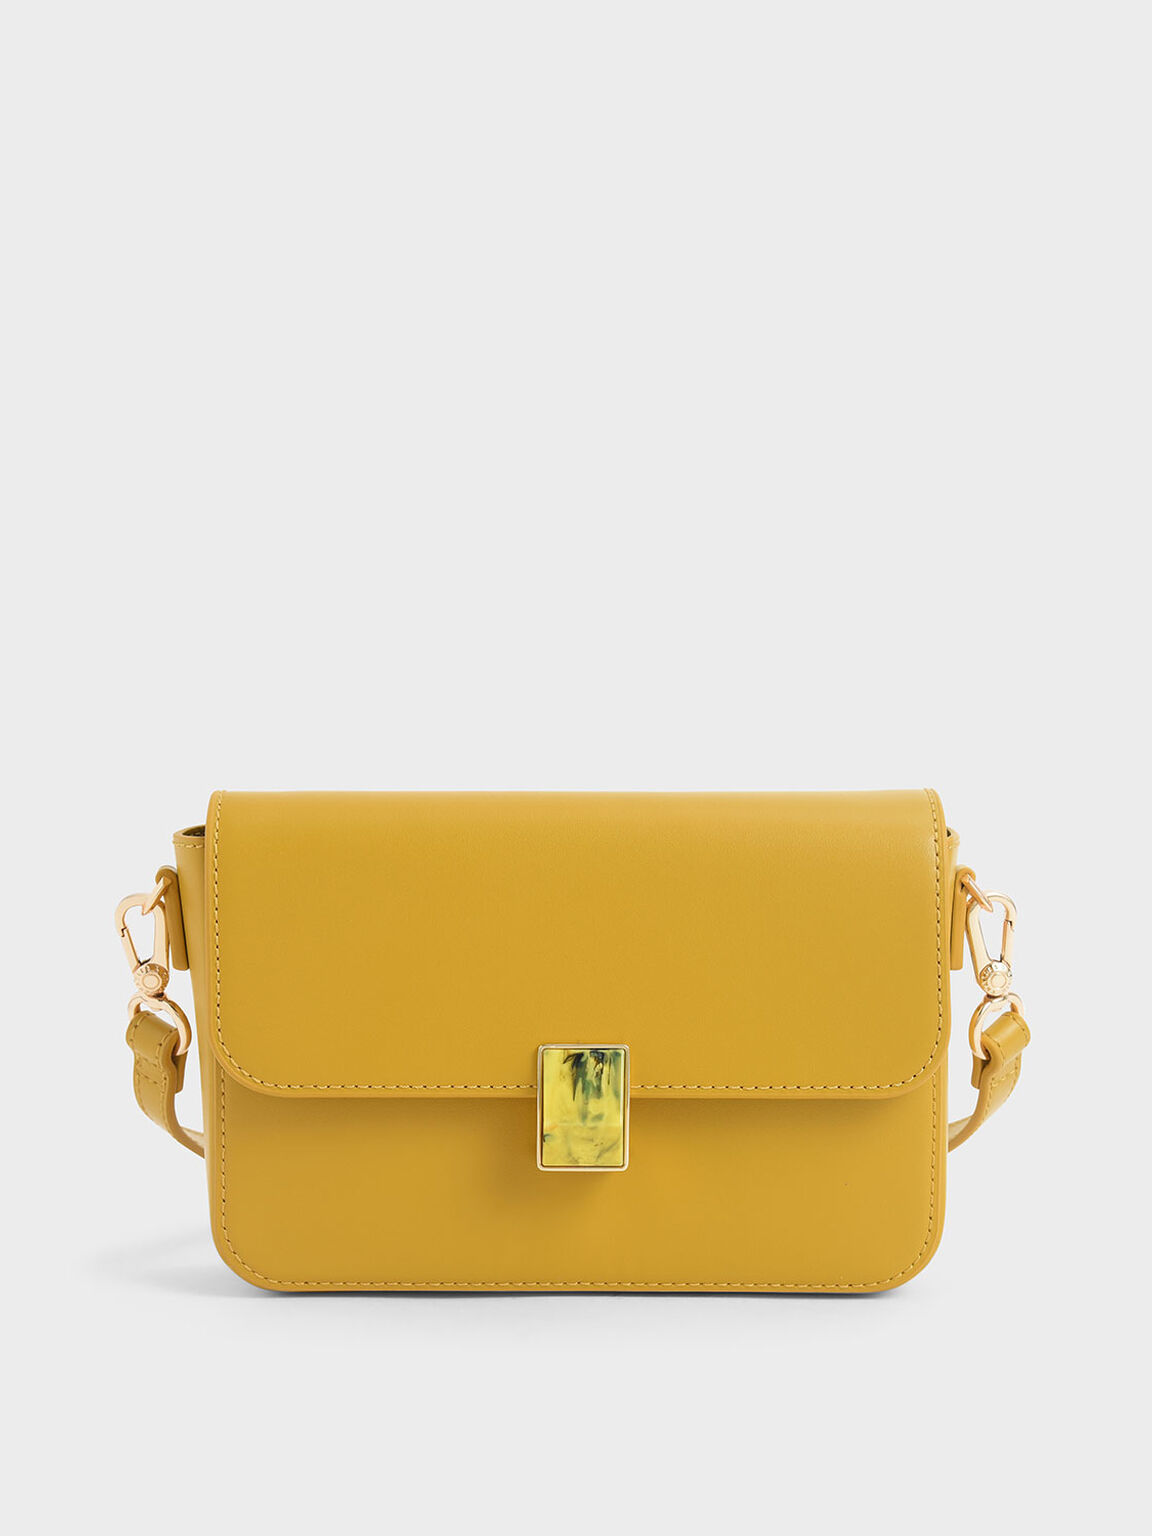 Leather Embellished Push-Lock Crossbody Bag, Yellow, hi-res